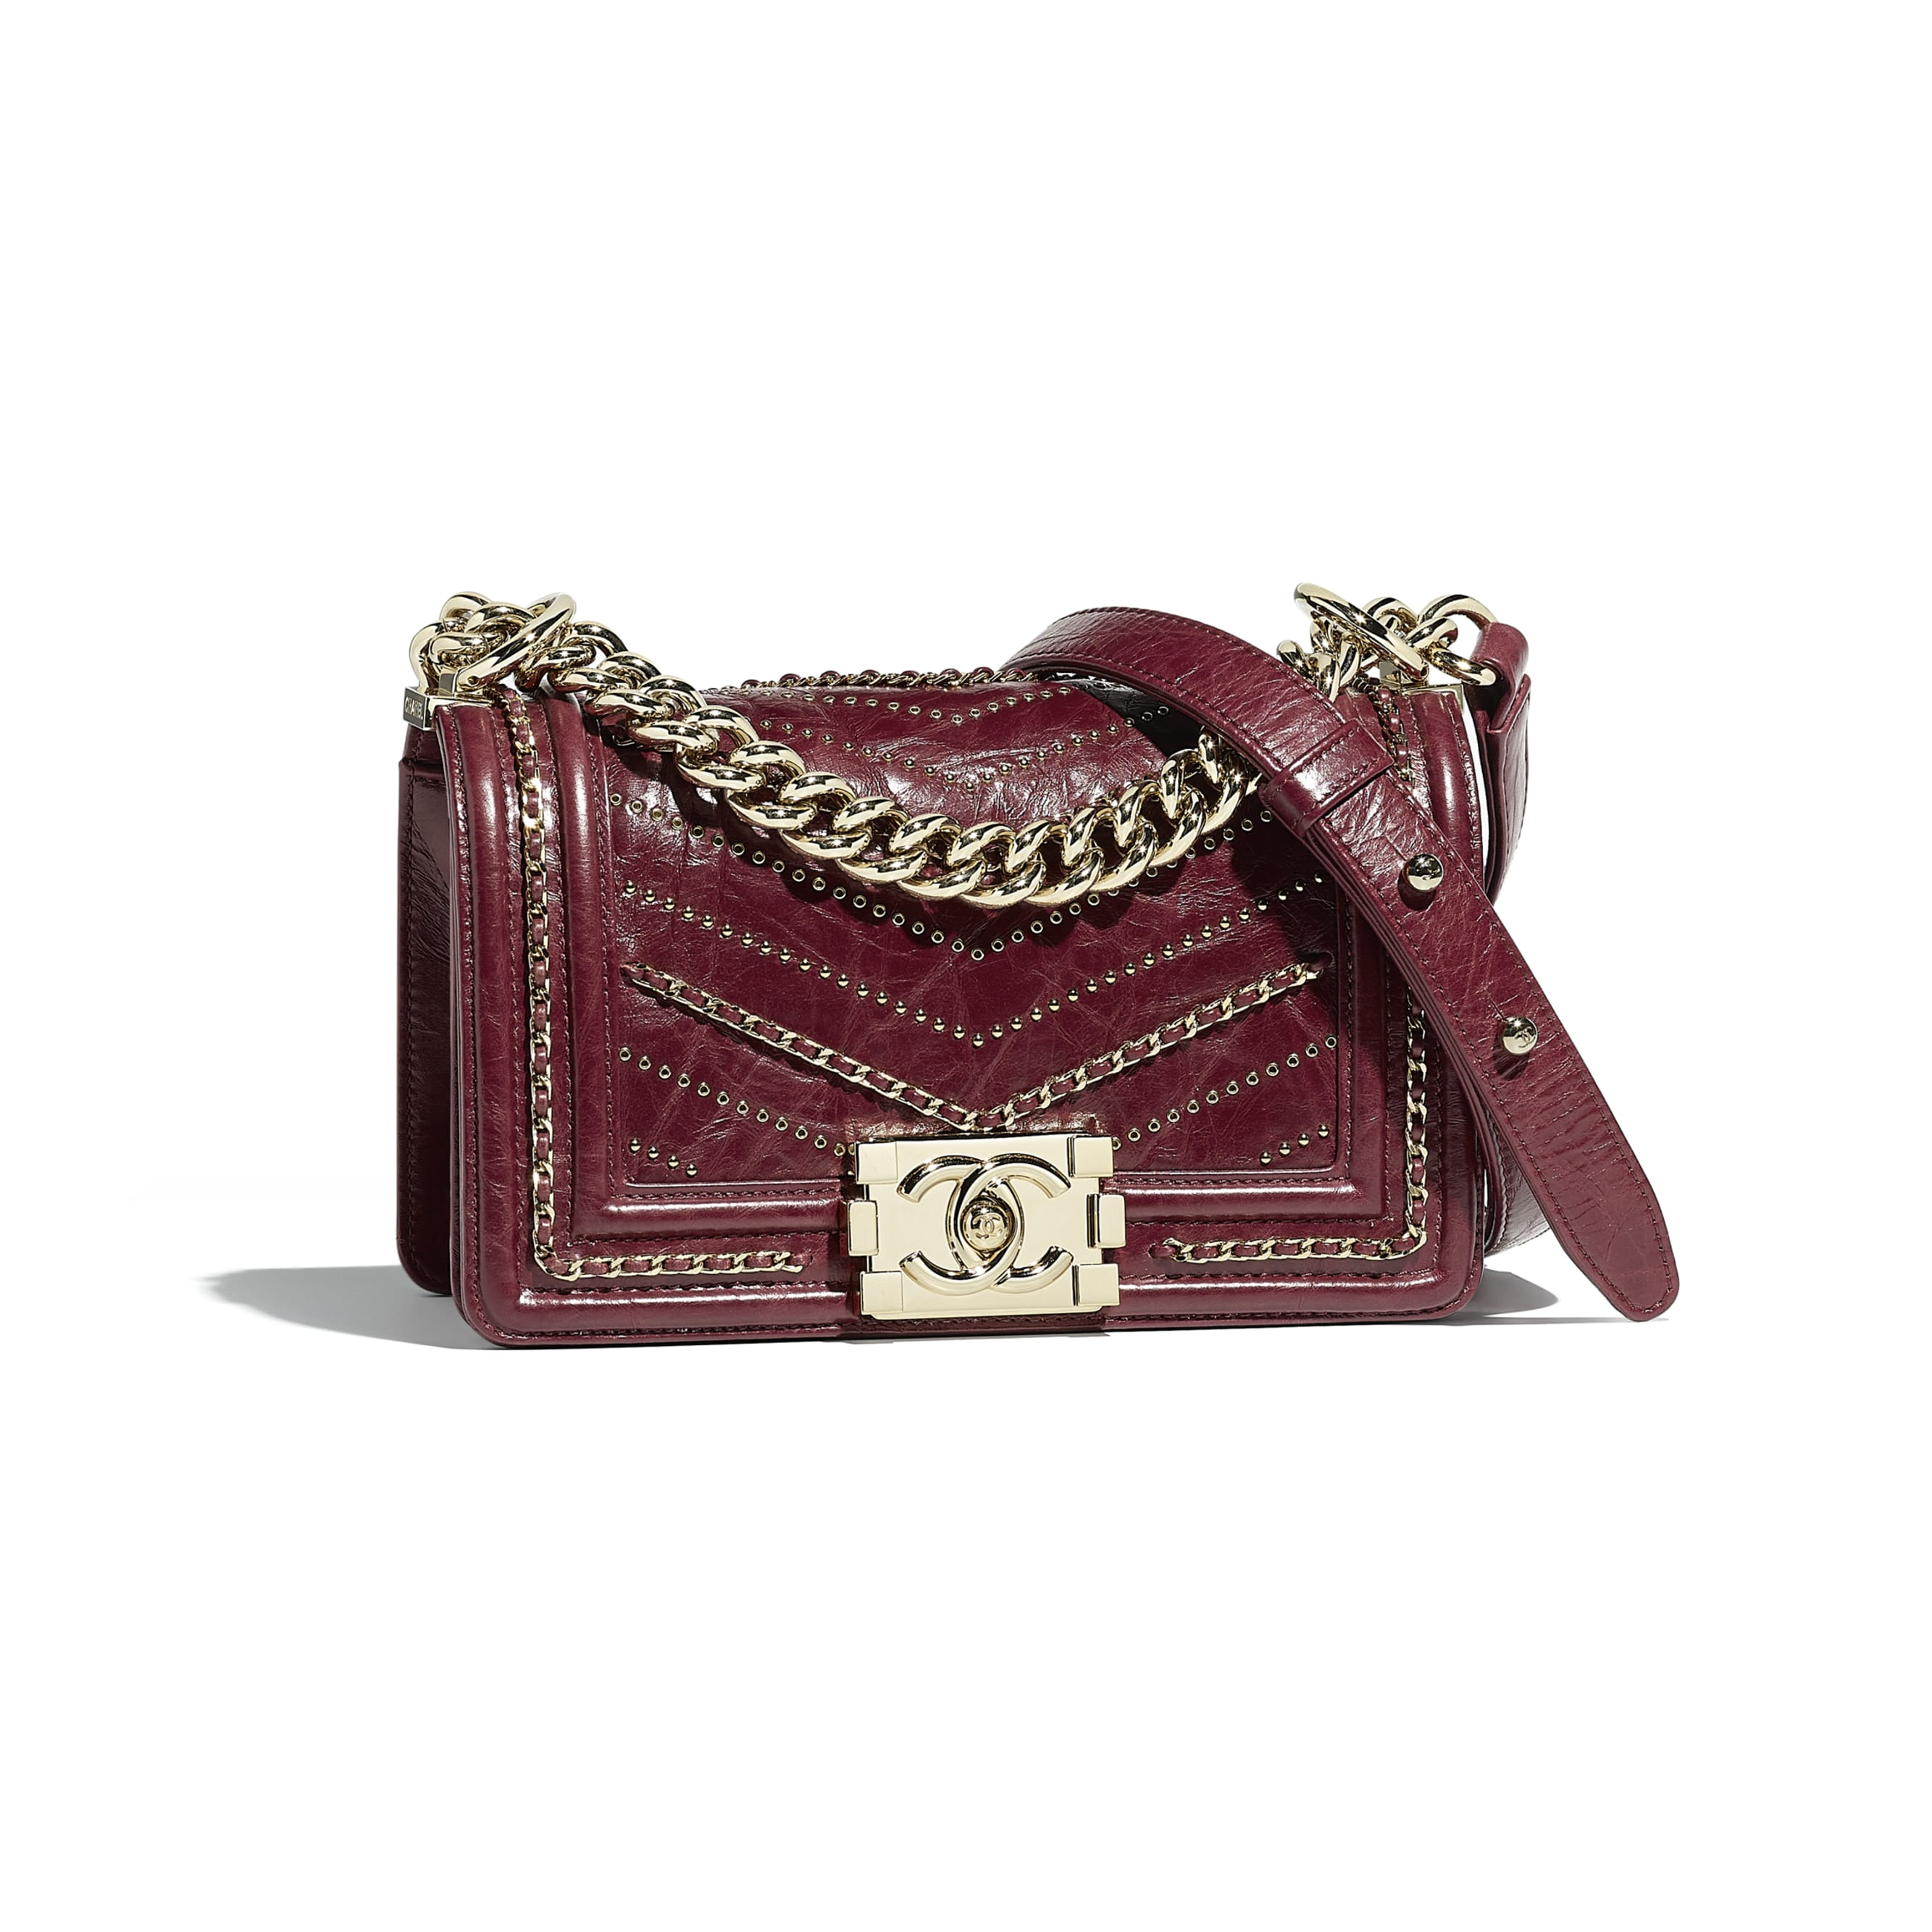 Small BOY CHANEL Handbag - Red - Crumpled Calfskin & Gold-Tone Metal - Default view - see standard sized version